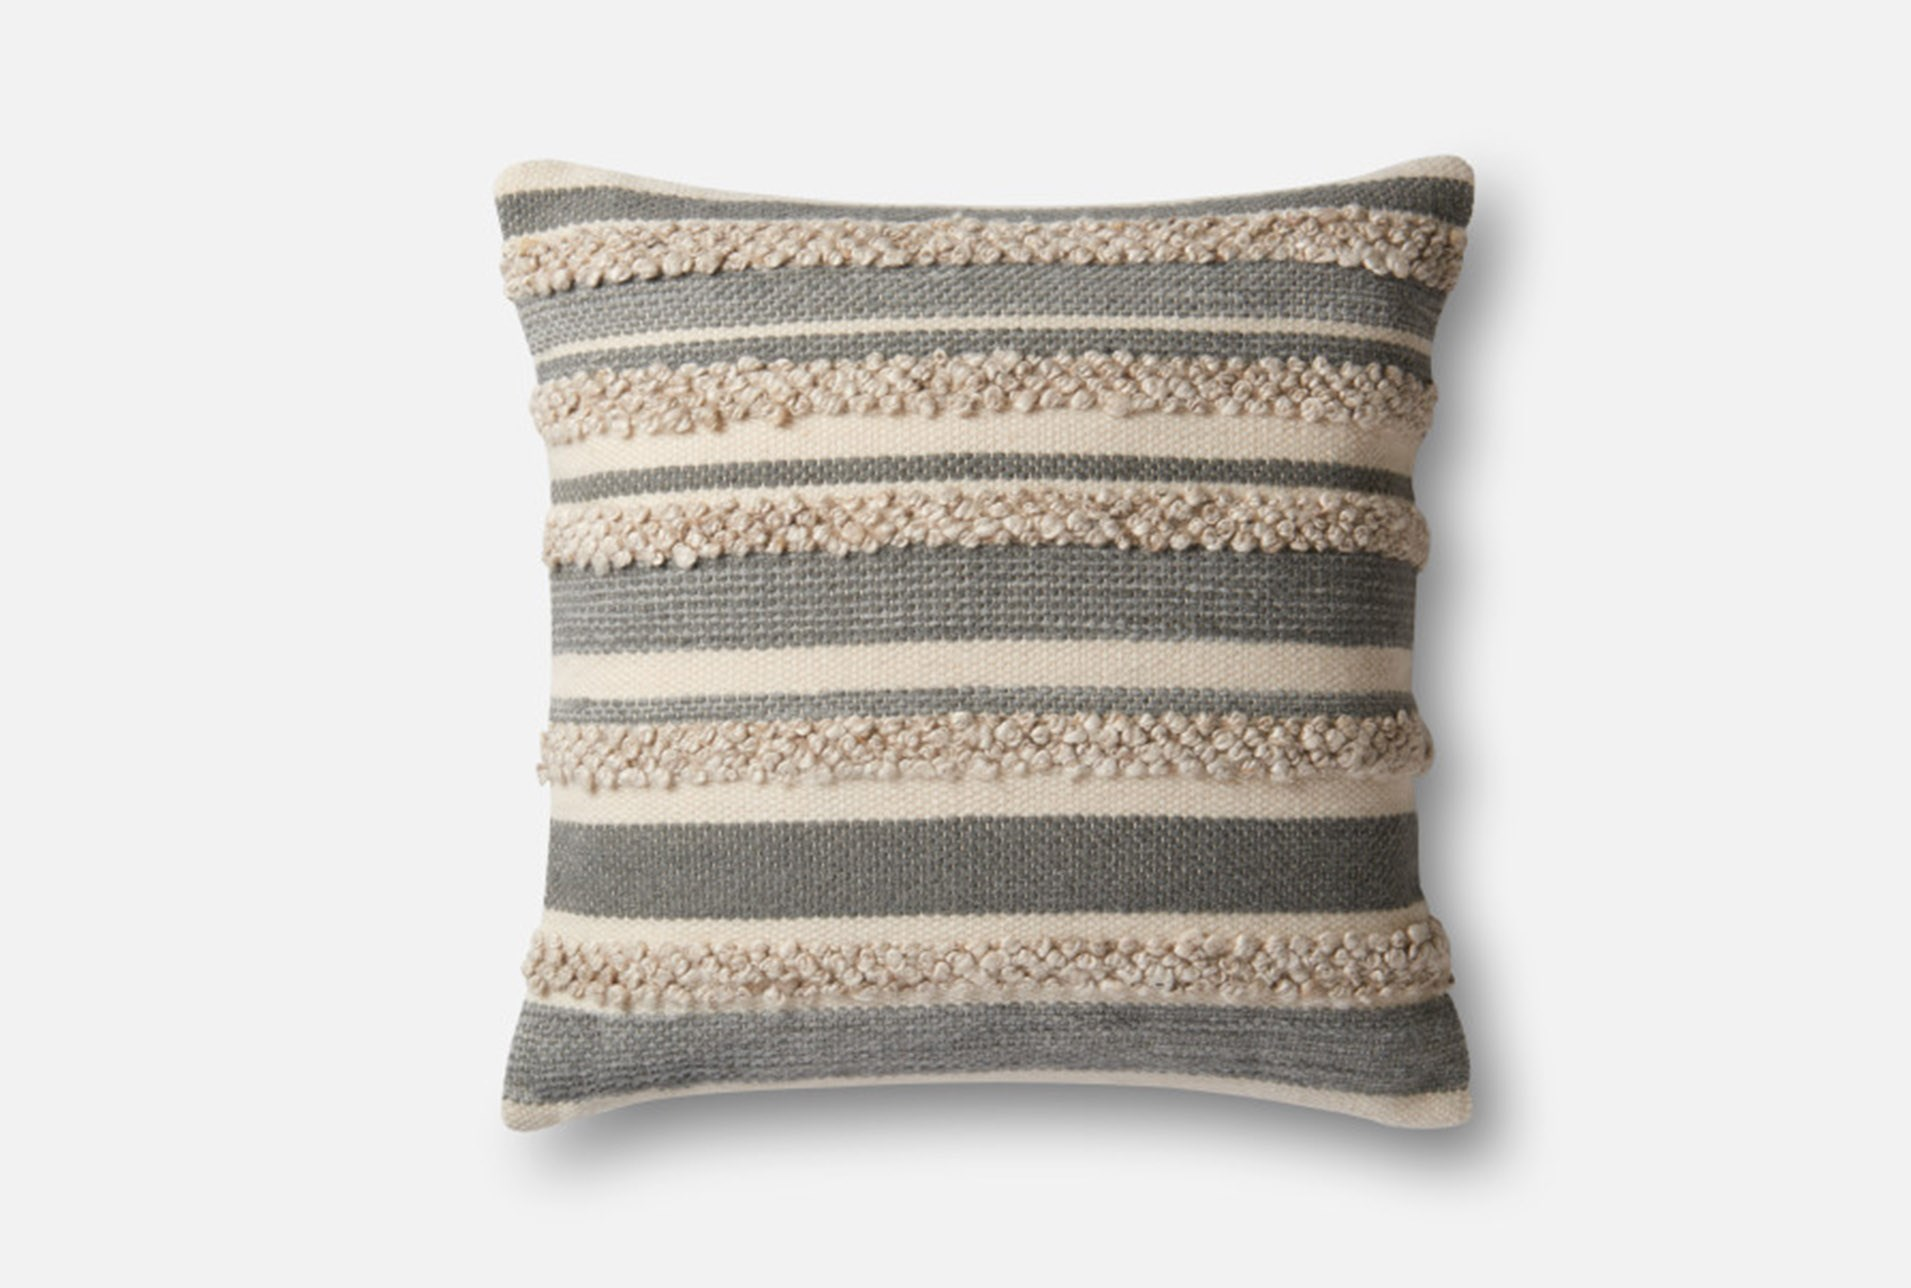 Accent Pillow Magnolia Home Textured Stripes Grey Ivory